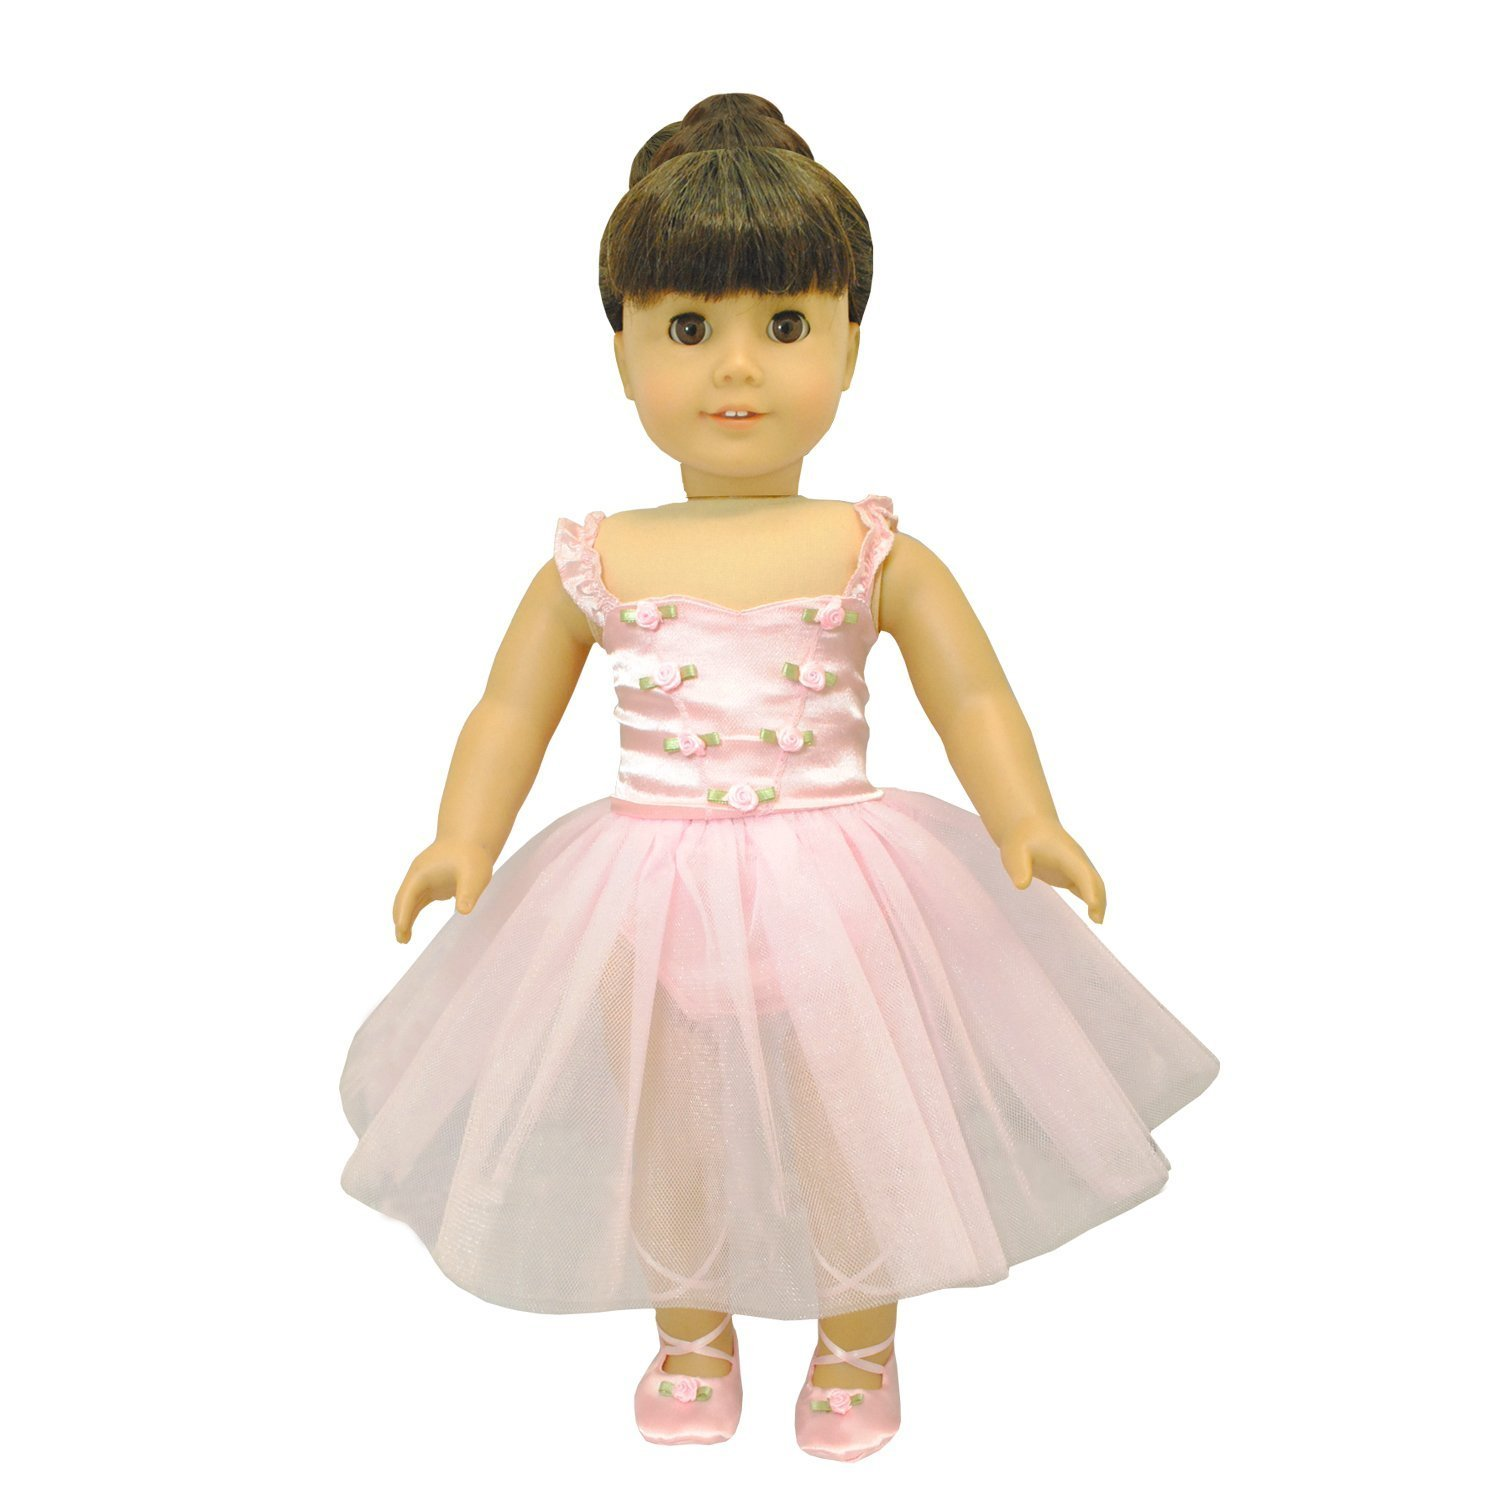 1e658400f Amazon.com: Pink Butterfly Closet Ballet Ballerina Dance Dress for 18-inch  Dolls : Toys & Games